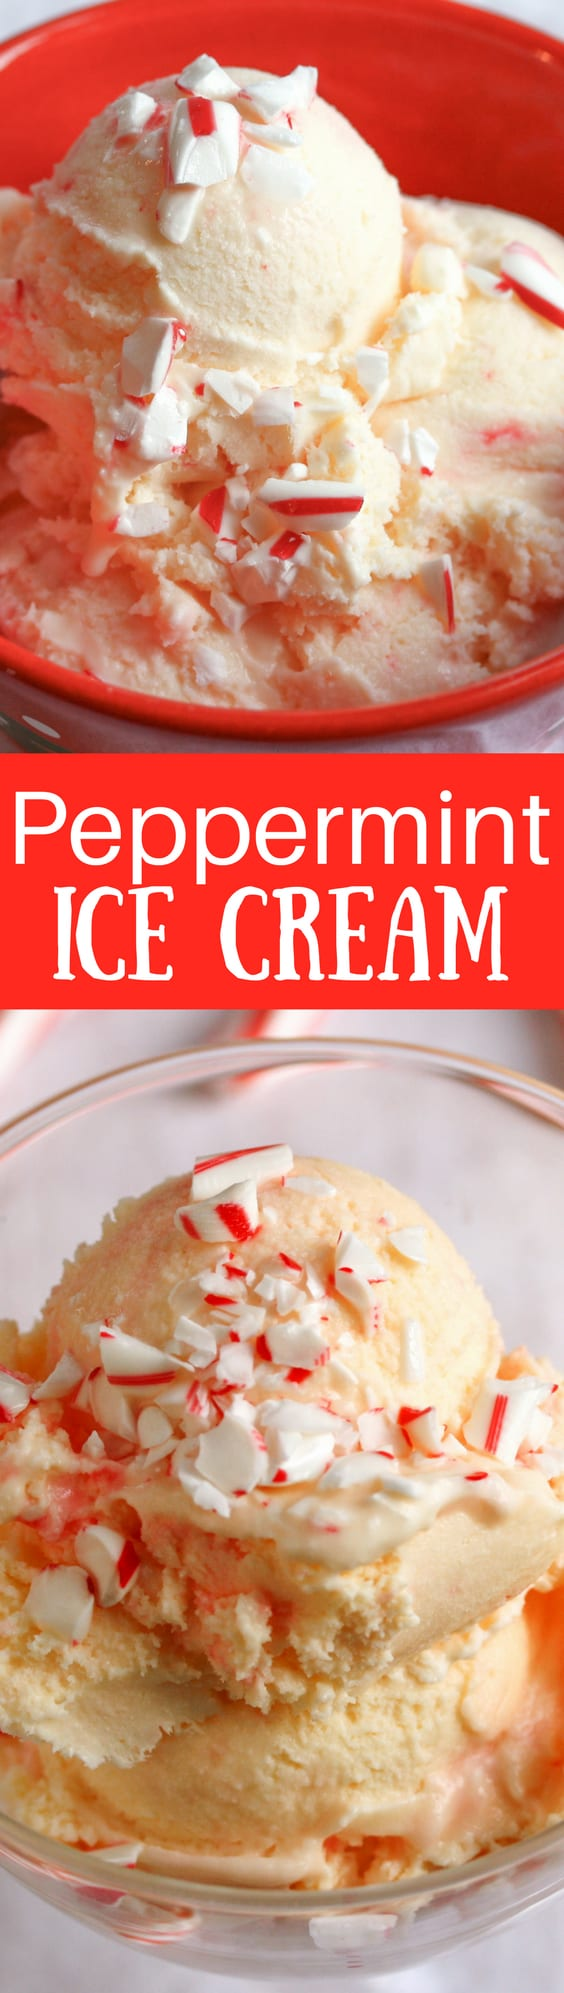 Peppermint Ice Cream - a wonderful combination of bright, cool peppermint and a creamy vanilla base for a tasty holiday frozen treat.  www.savingdessert.com